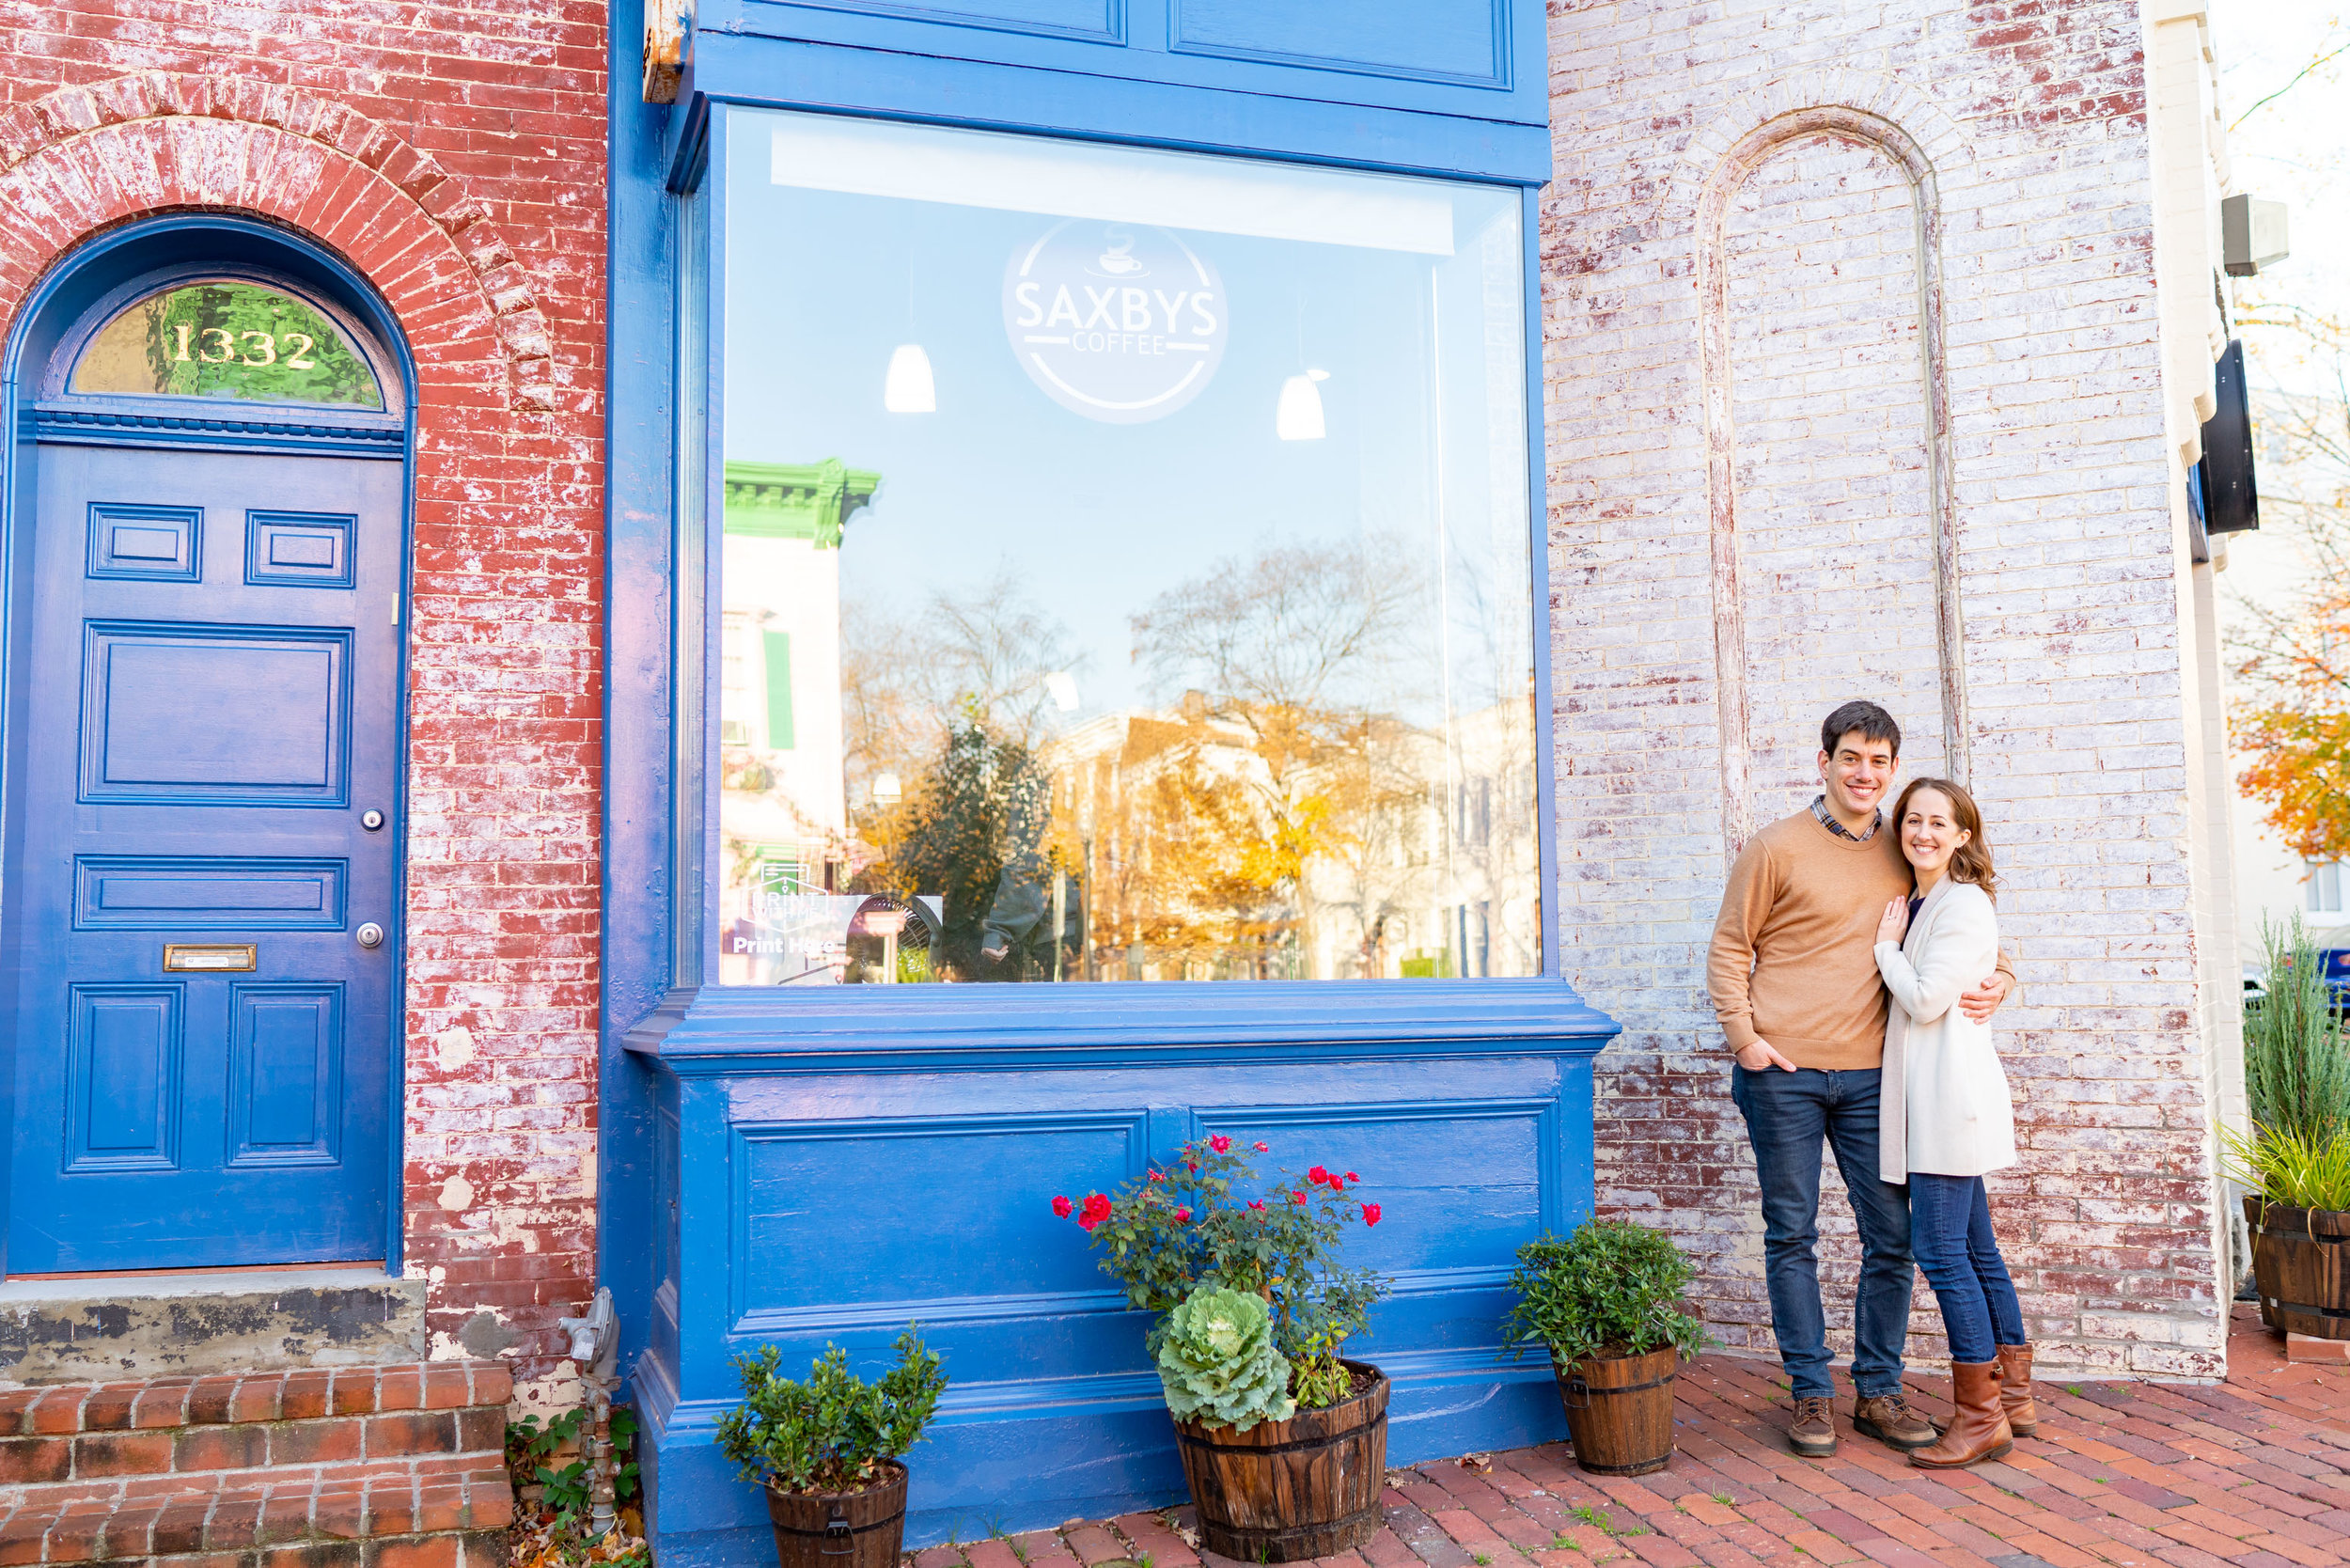 Bride and groom standing in front of blue front Saxby's coffee shop for engagement photo